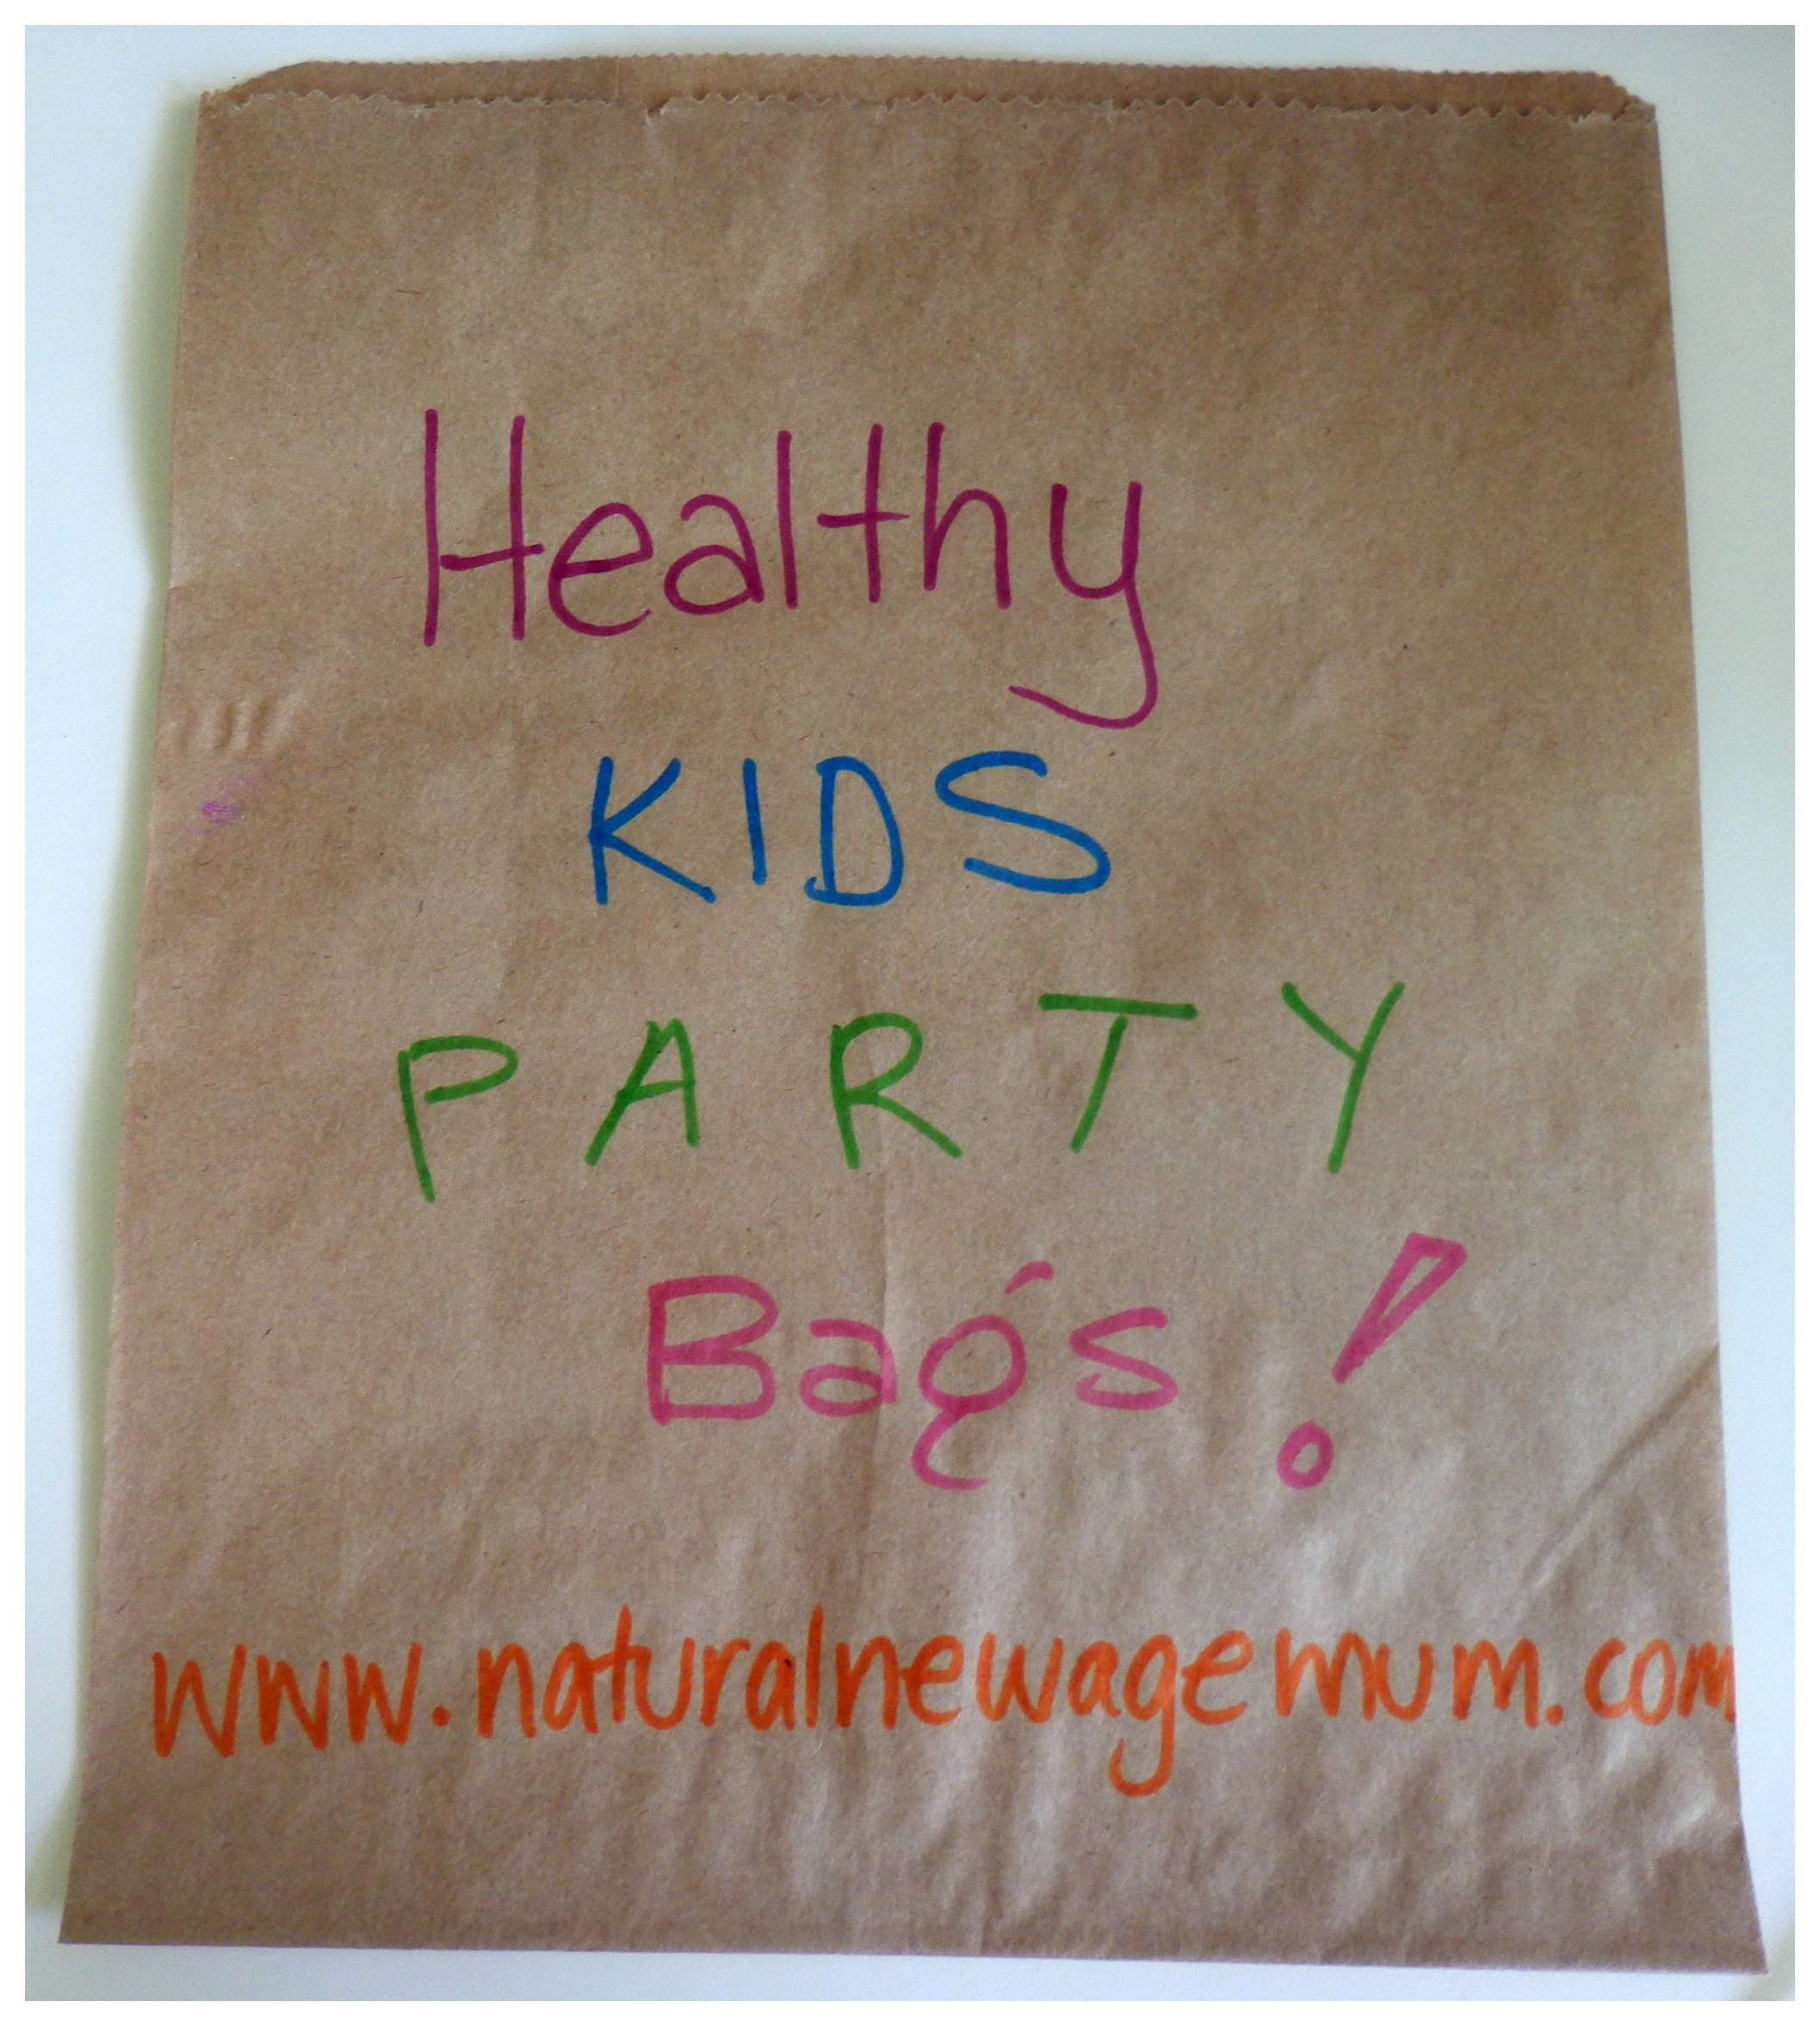 Healthy Kids Party Bags Natural New Age Mum